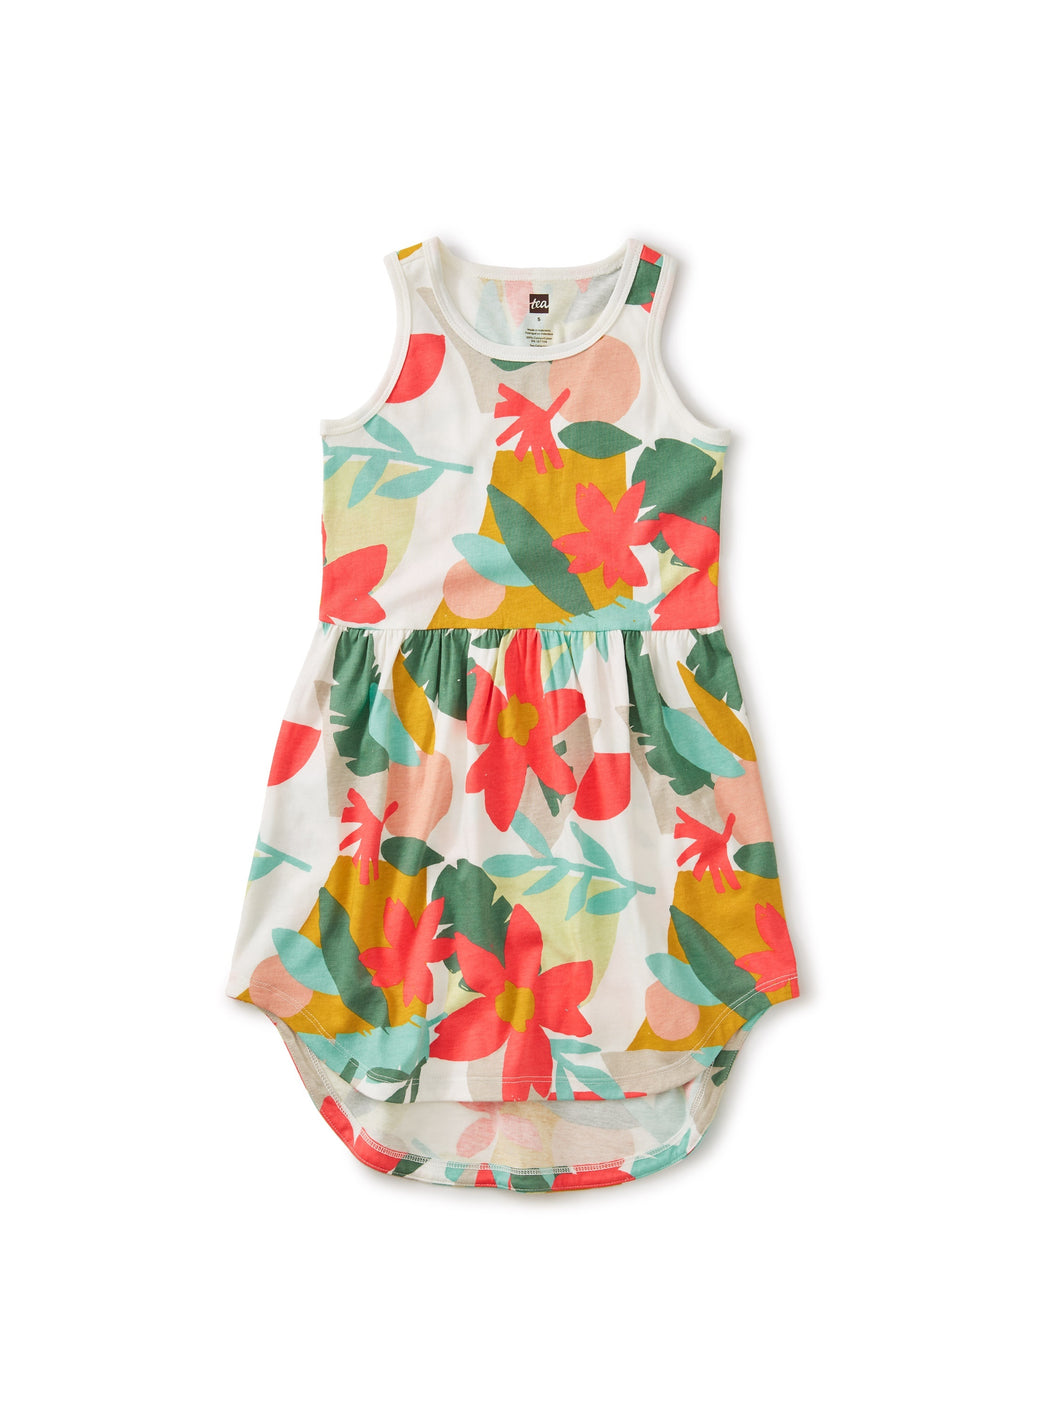 Tea Collection Skirted Tank Dress - Oasis Floral - Bloom Kids Collection - Tea Collection